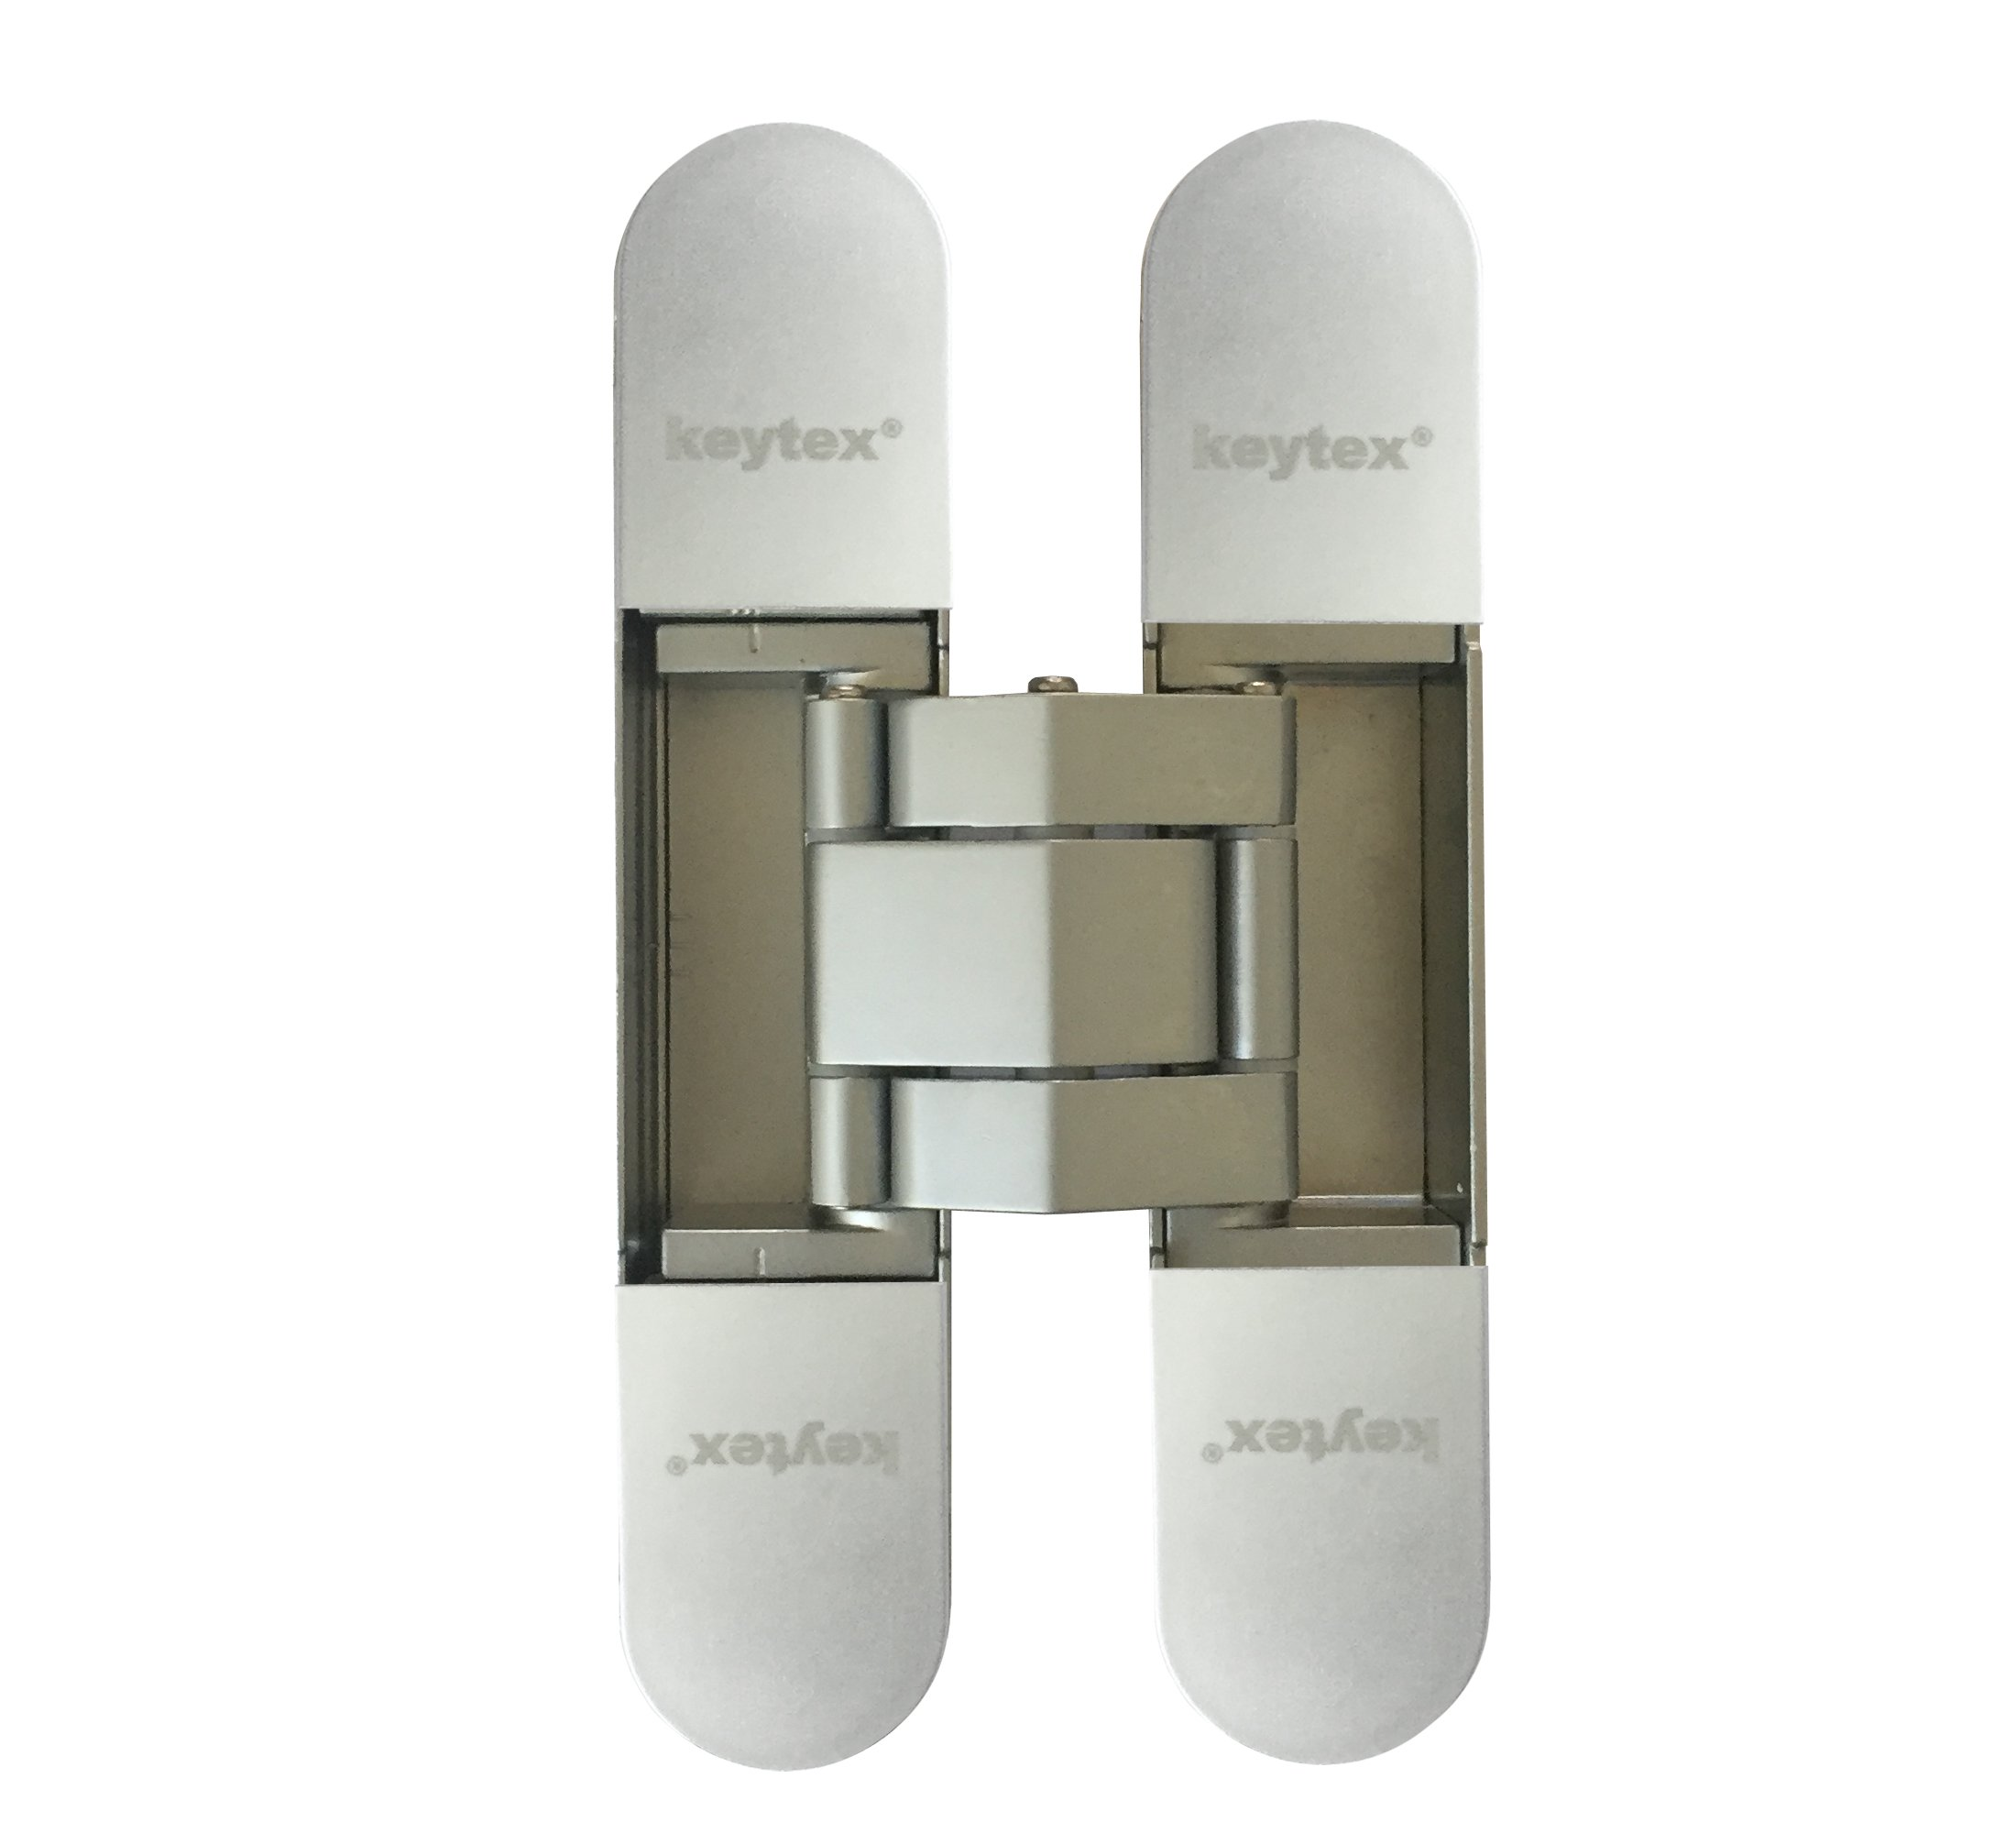 KT3D-140 Invisible Hinge, Set of Two(2), Up to 132lbs. Doors, Concealed and Streamline Door Hinge, 3-D Adjustable (Up to 132lbs)